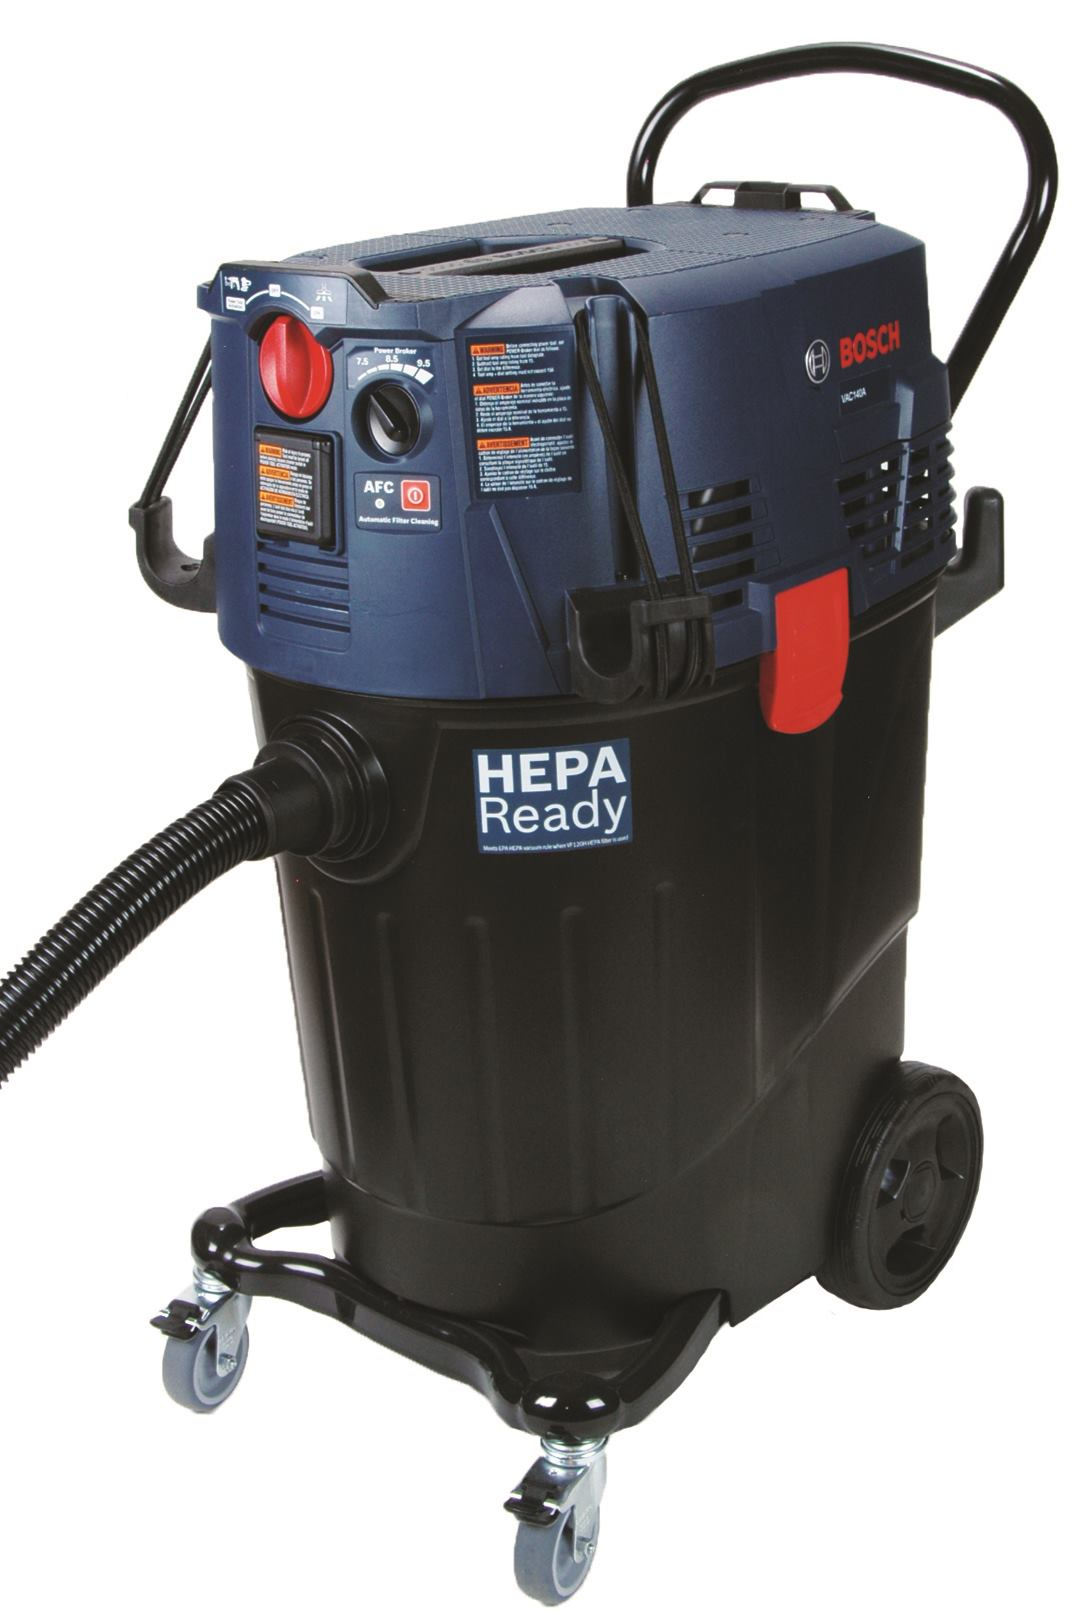 Bosch Vac140a Hepa Vac Tools Of The Trade Vacuums And